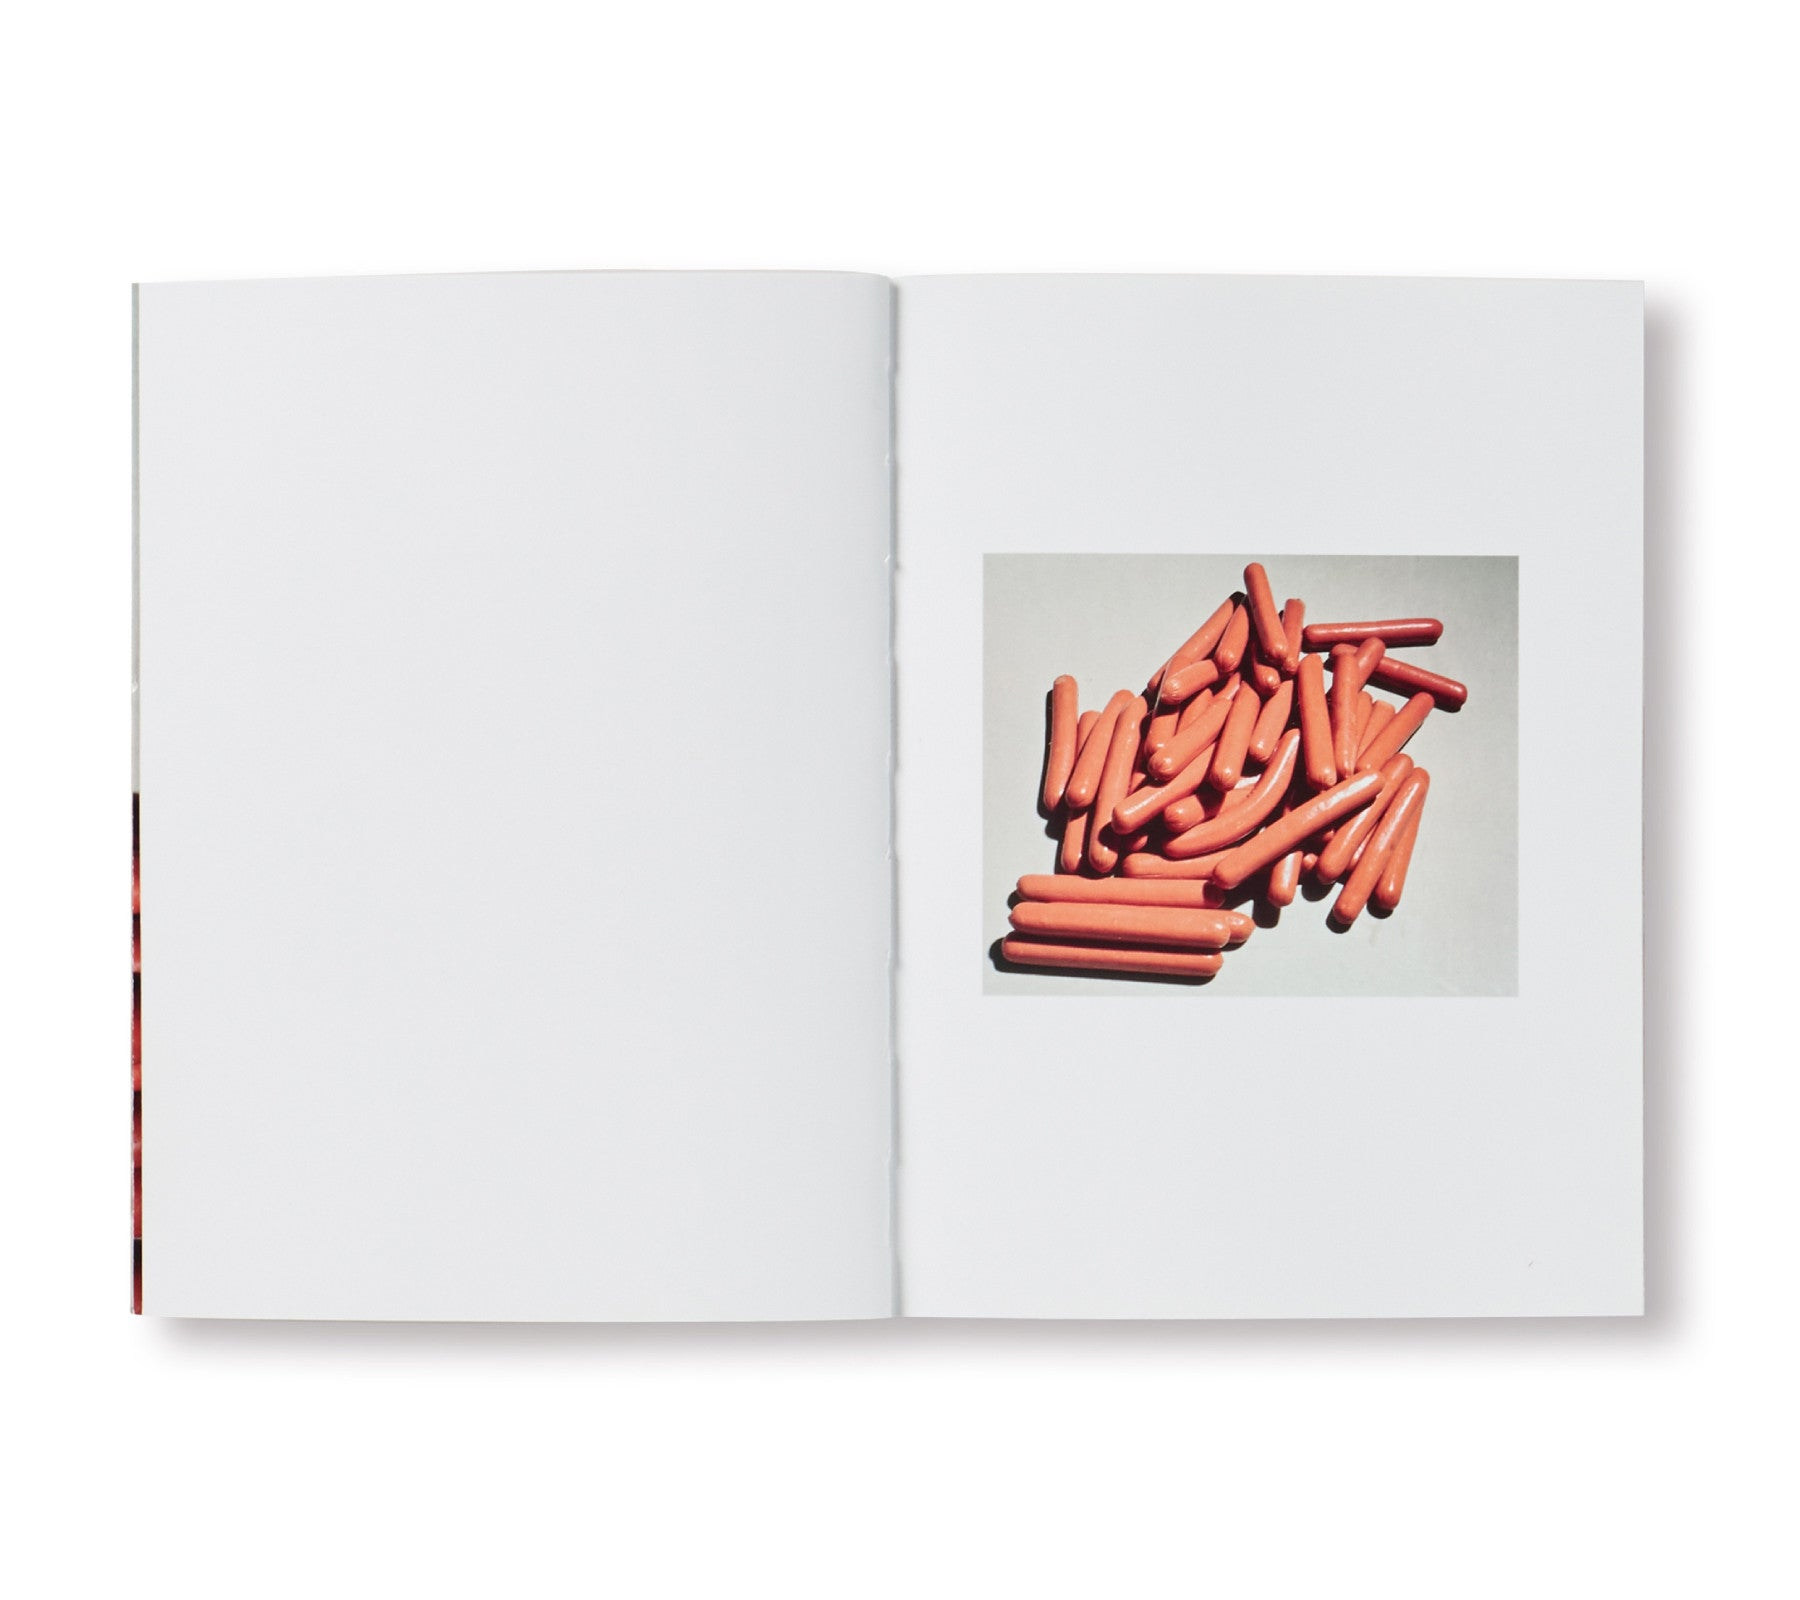 SPBH BOOK CLUB VOL.VII by Lucas Blalock [SIGNED]